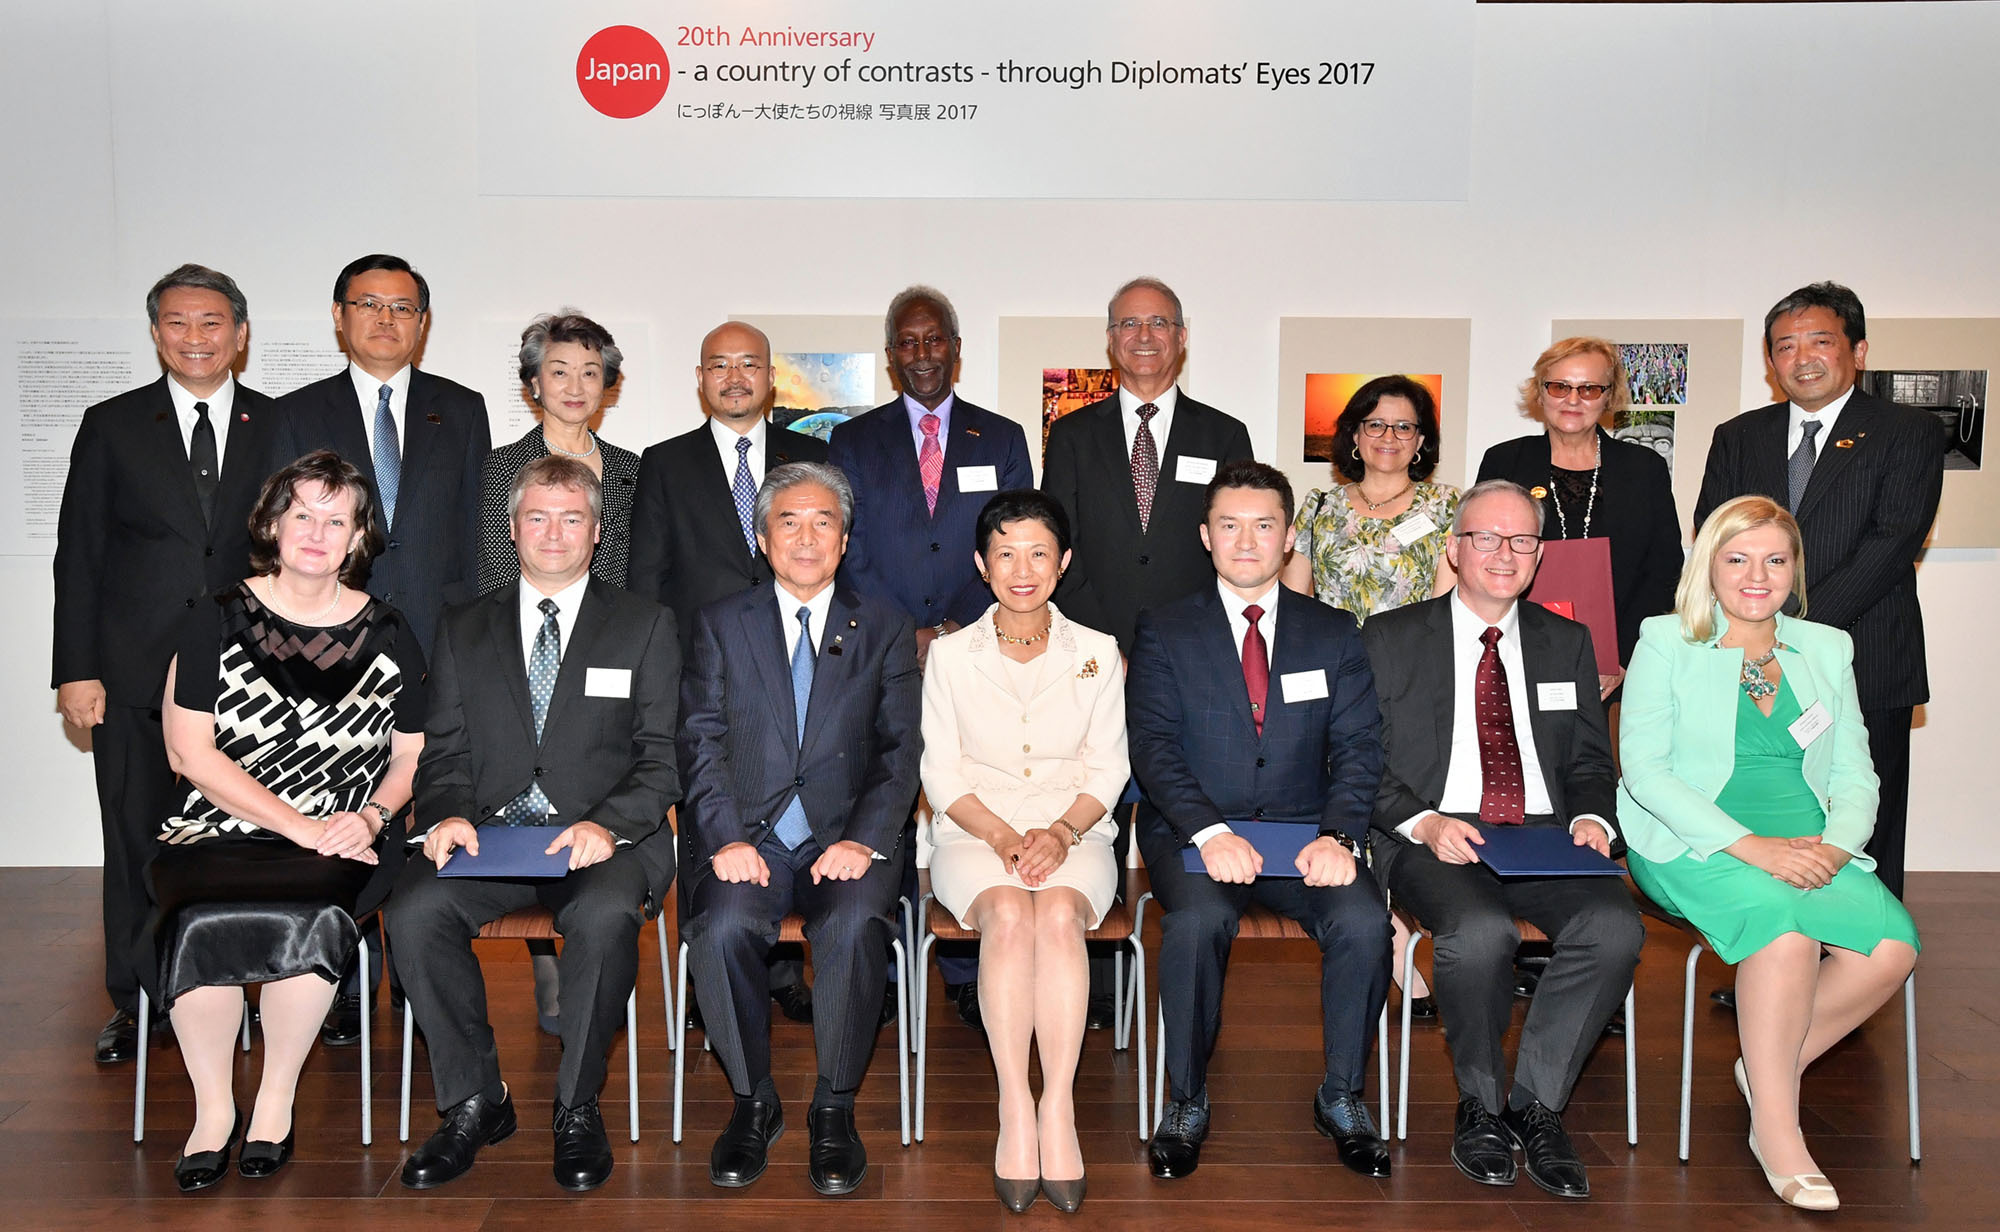 """Attendees at the """"Japan Through Diplomats' Eyes 2017"""" opening event at Roppongi Hills on Oct. 3. Front row, left to right: Luxembourg Ambassador Beatrice Kirsch, Executive Committee chair; Grand prize winner Attila Erdos; Hirofumi Nakasone, head of the jury; Honorary President Princess Takamado; Princess Takamado Memorial prize winner Andrey Kuzhabekov; New Zealand Ambassador Stephen Payton, winner of the Ambassador Prize; and Macedonian Ambassador Andrijana Cvetkovik, who received a special mention from the jury. Behind them are other special-mention winners and committee members.    YOSHIAKI MIURA"""